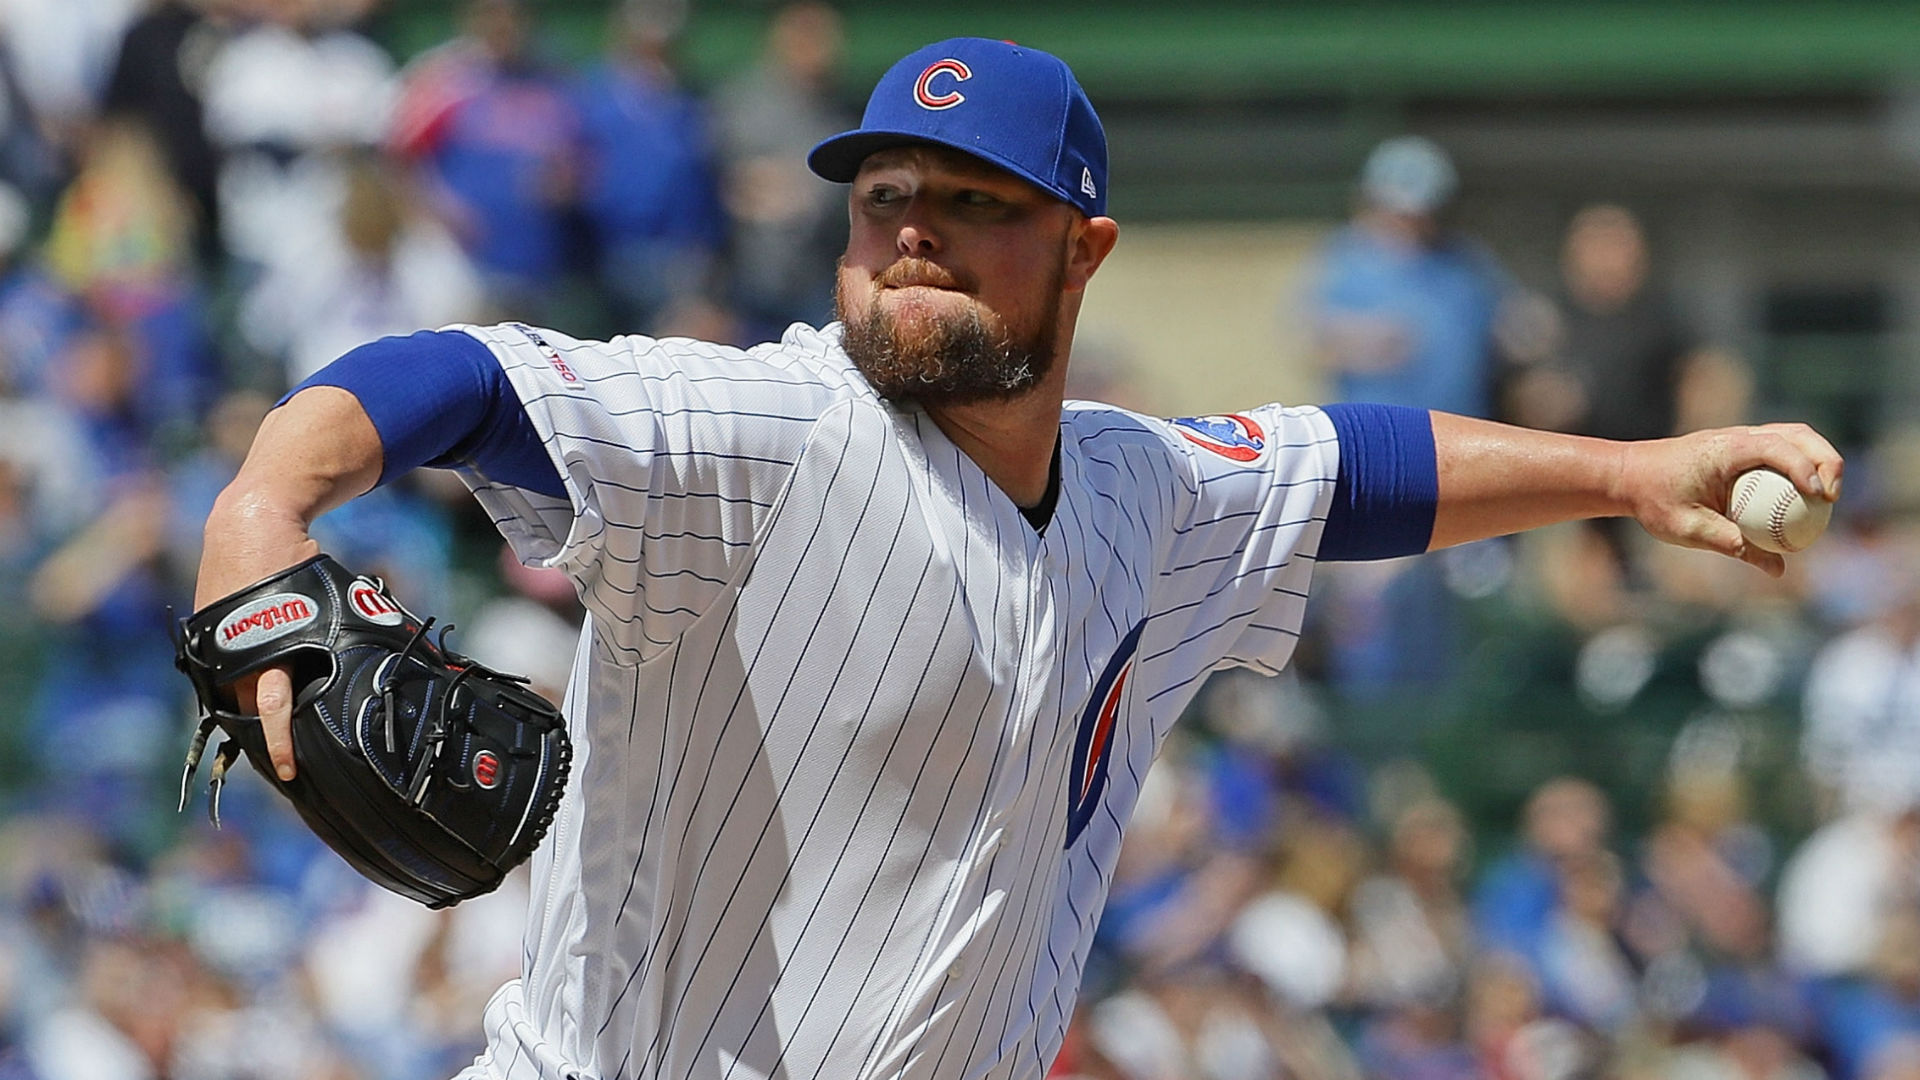 Cubs' Lester throws simulated game